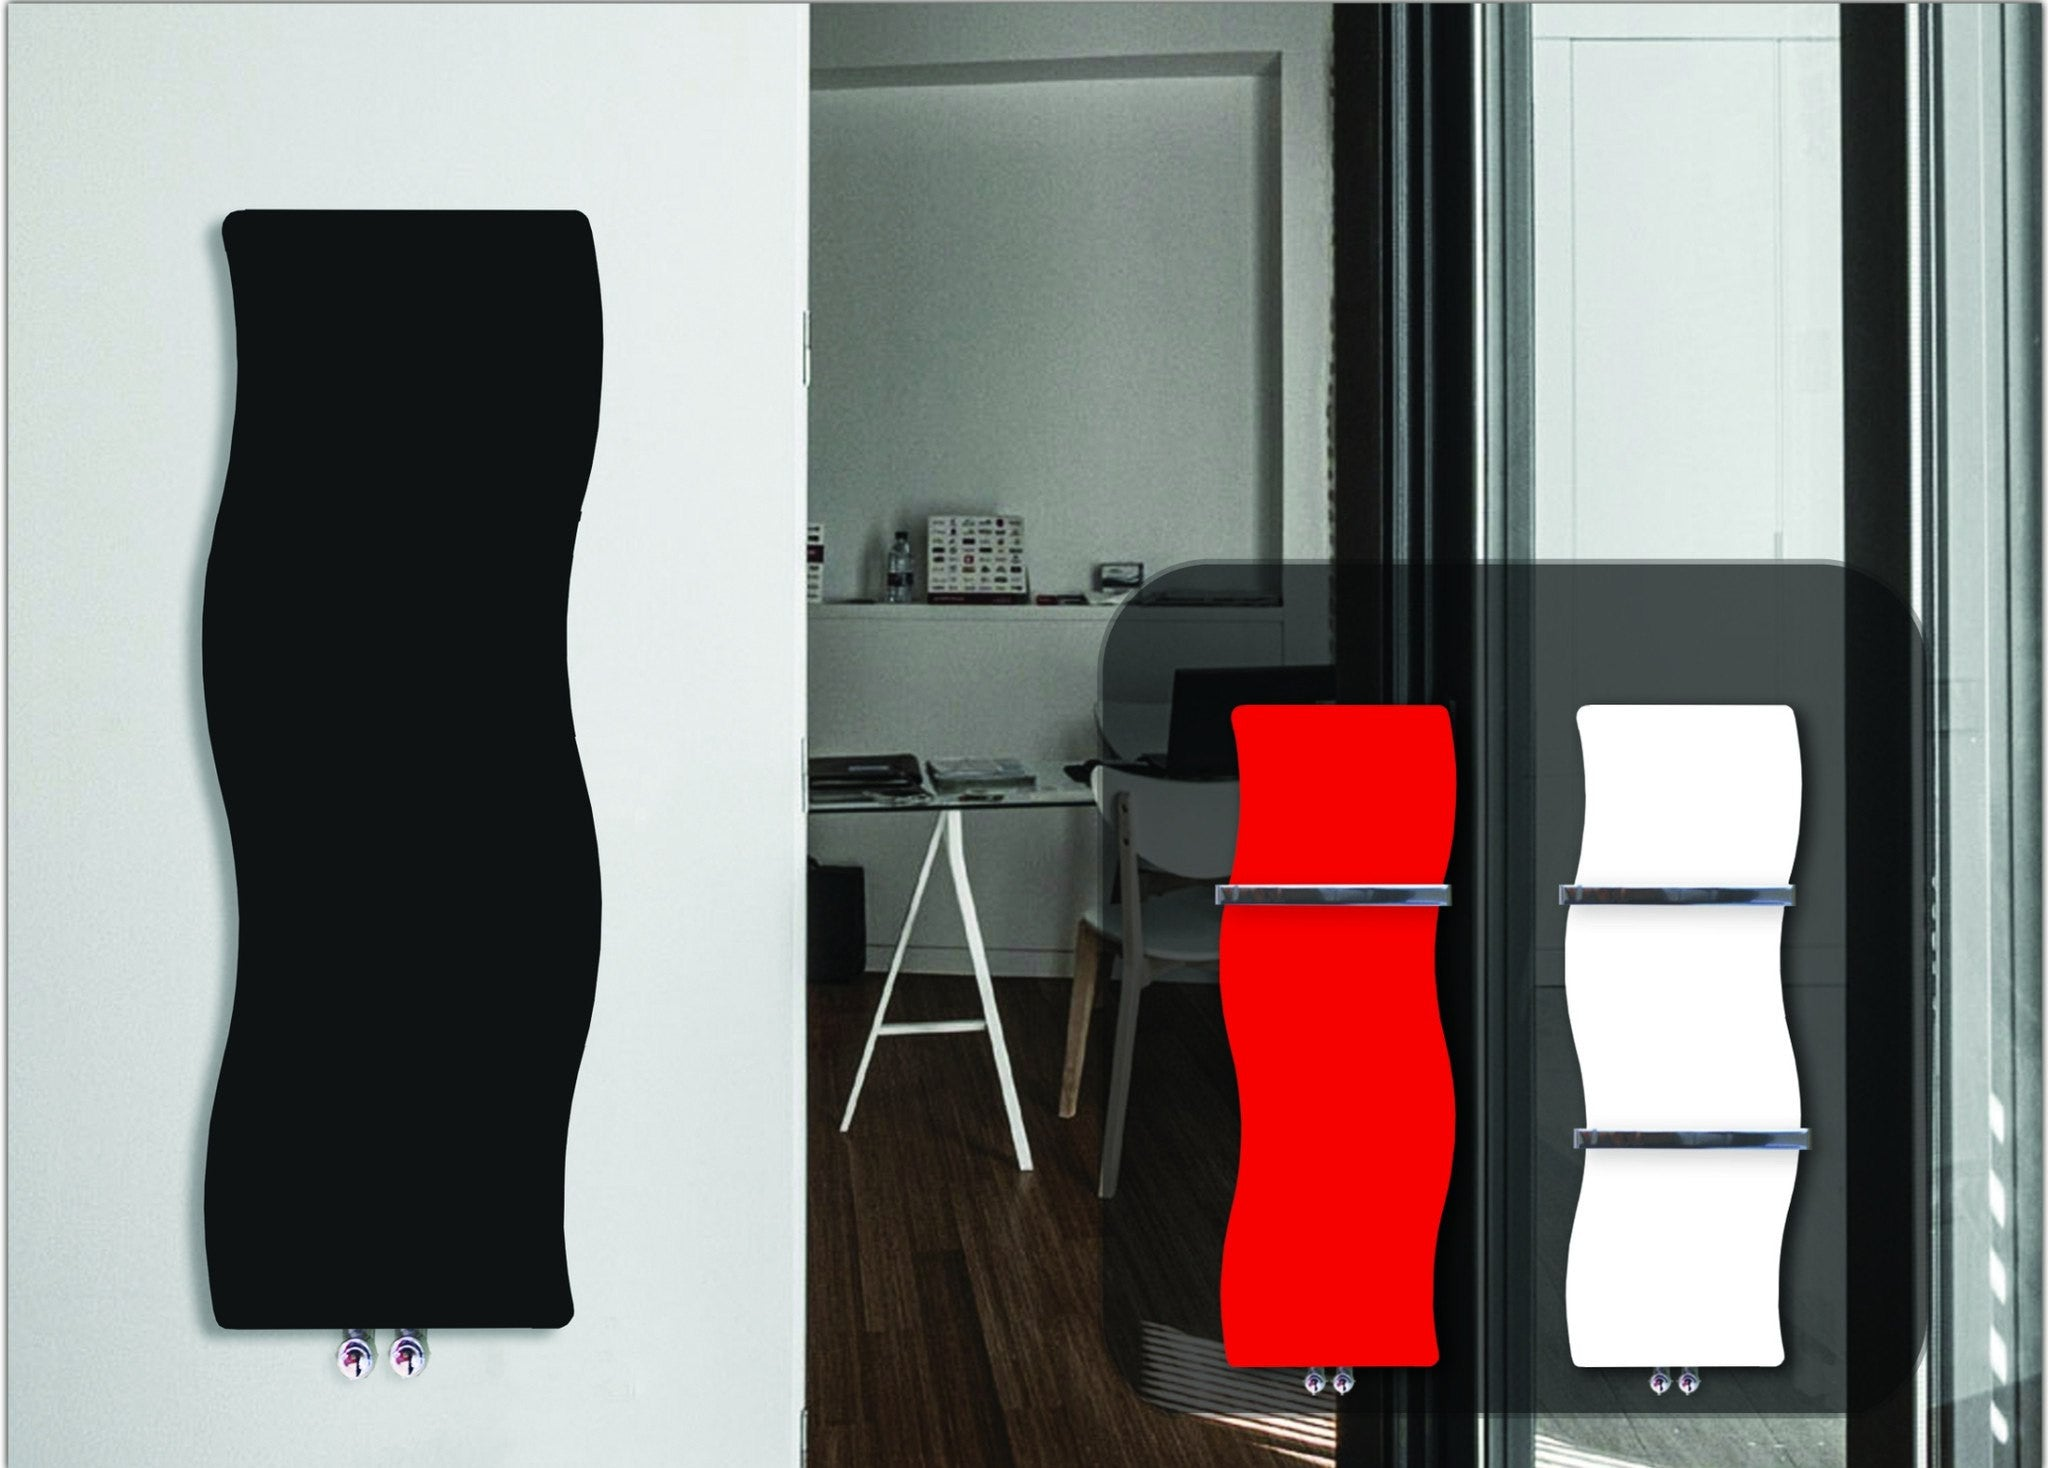 Designer Wave Style 1200 mm High x 350 mm Wide Heated Towel Rail Radiator Black - Elegant Radiators